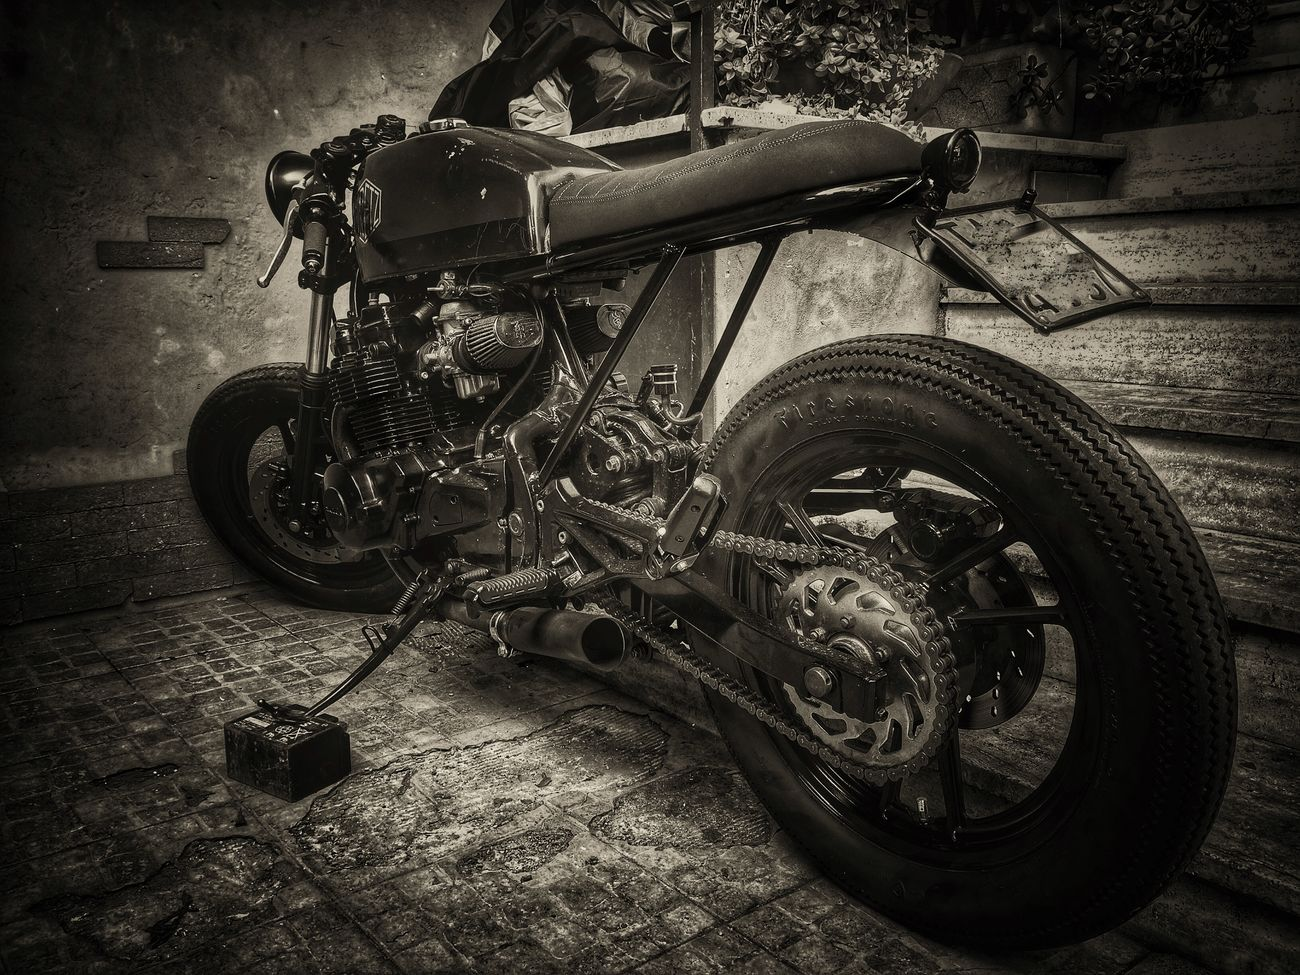 Vintage Cafe' Racer Streetphoto_bw Blackandwhite Monochrome Bw_collection Vintage Motorcycles Bw_lover EyeEm Best Edits EyeEmbnw Black And White